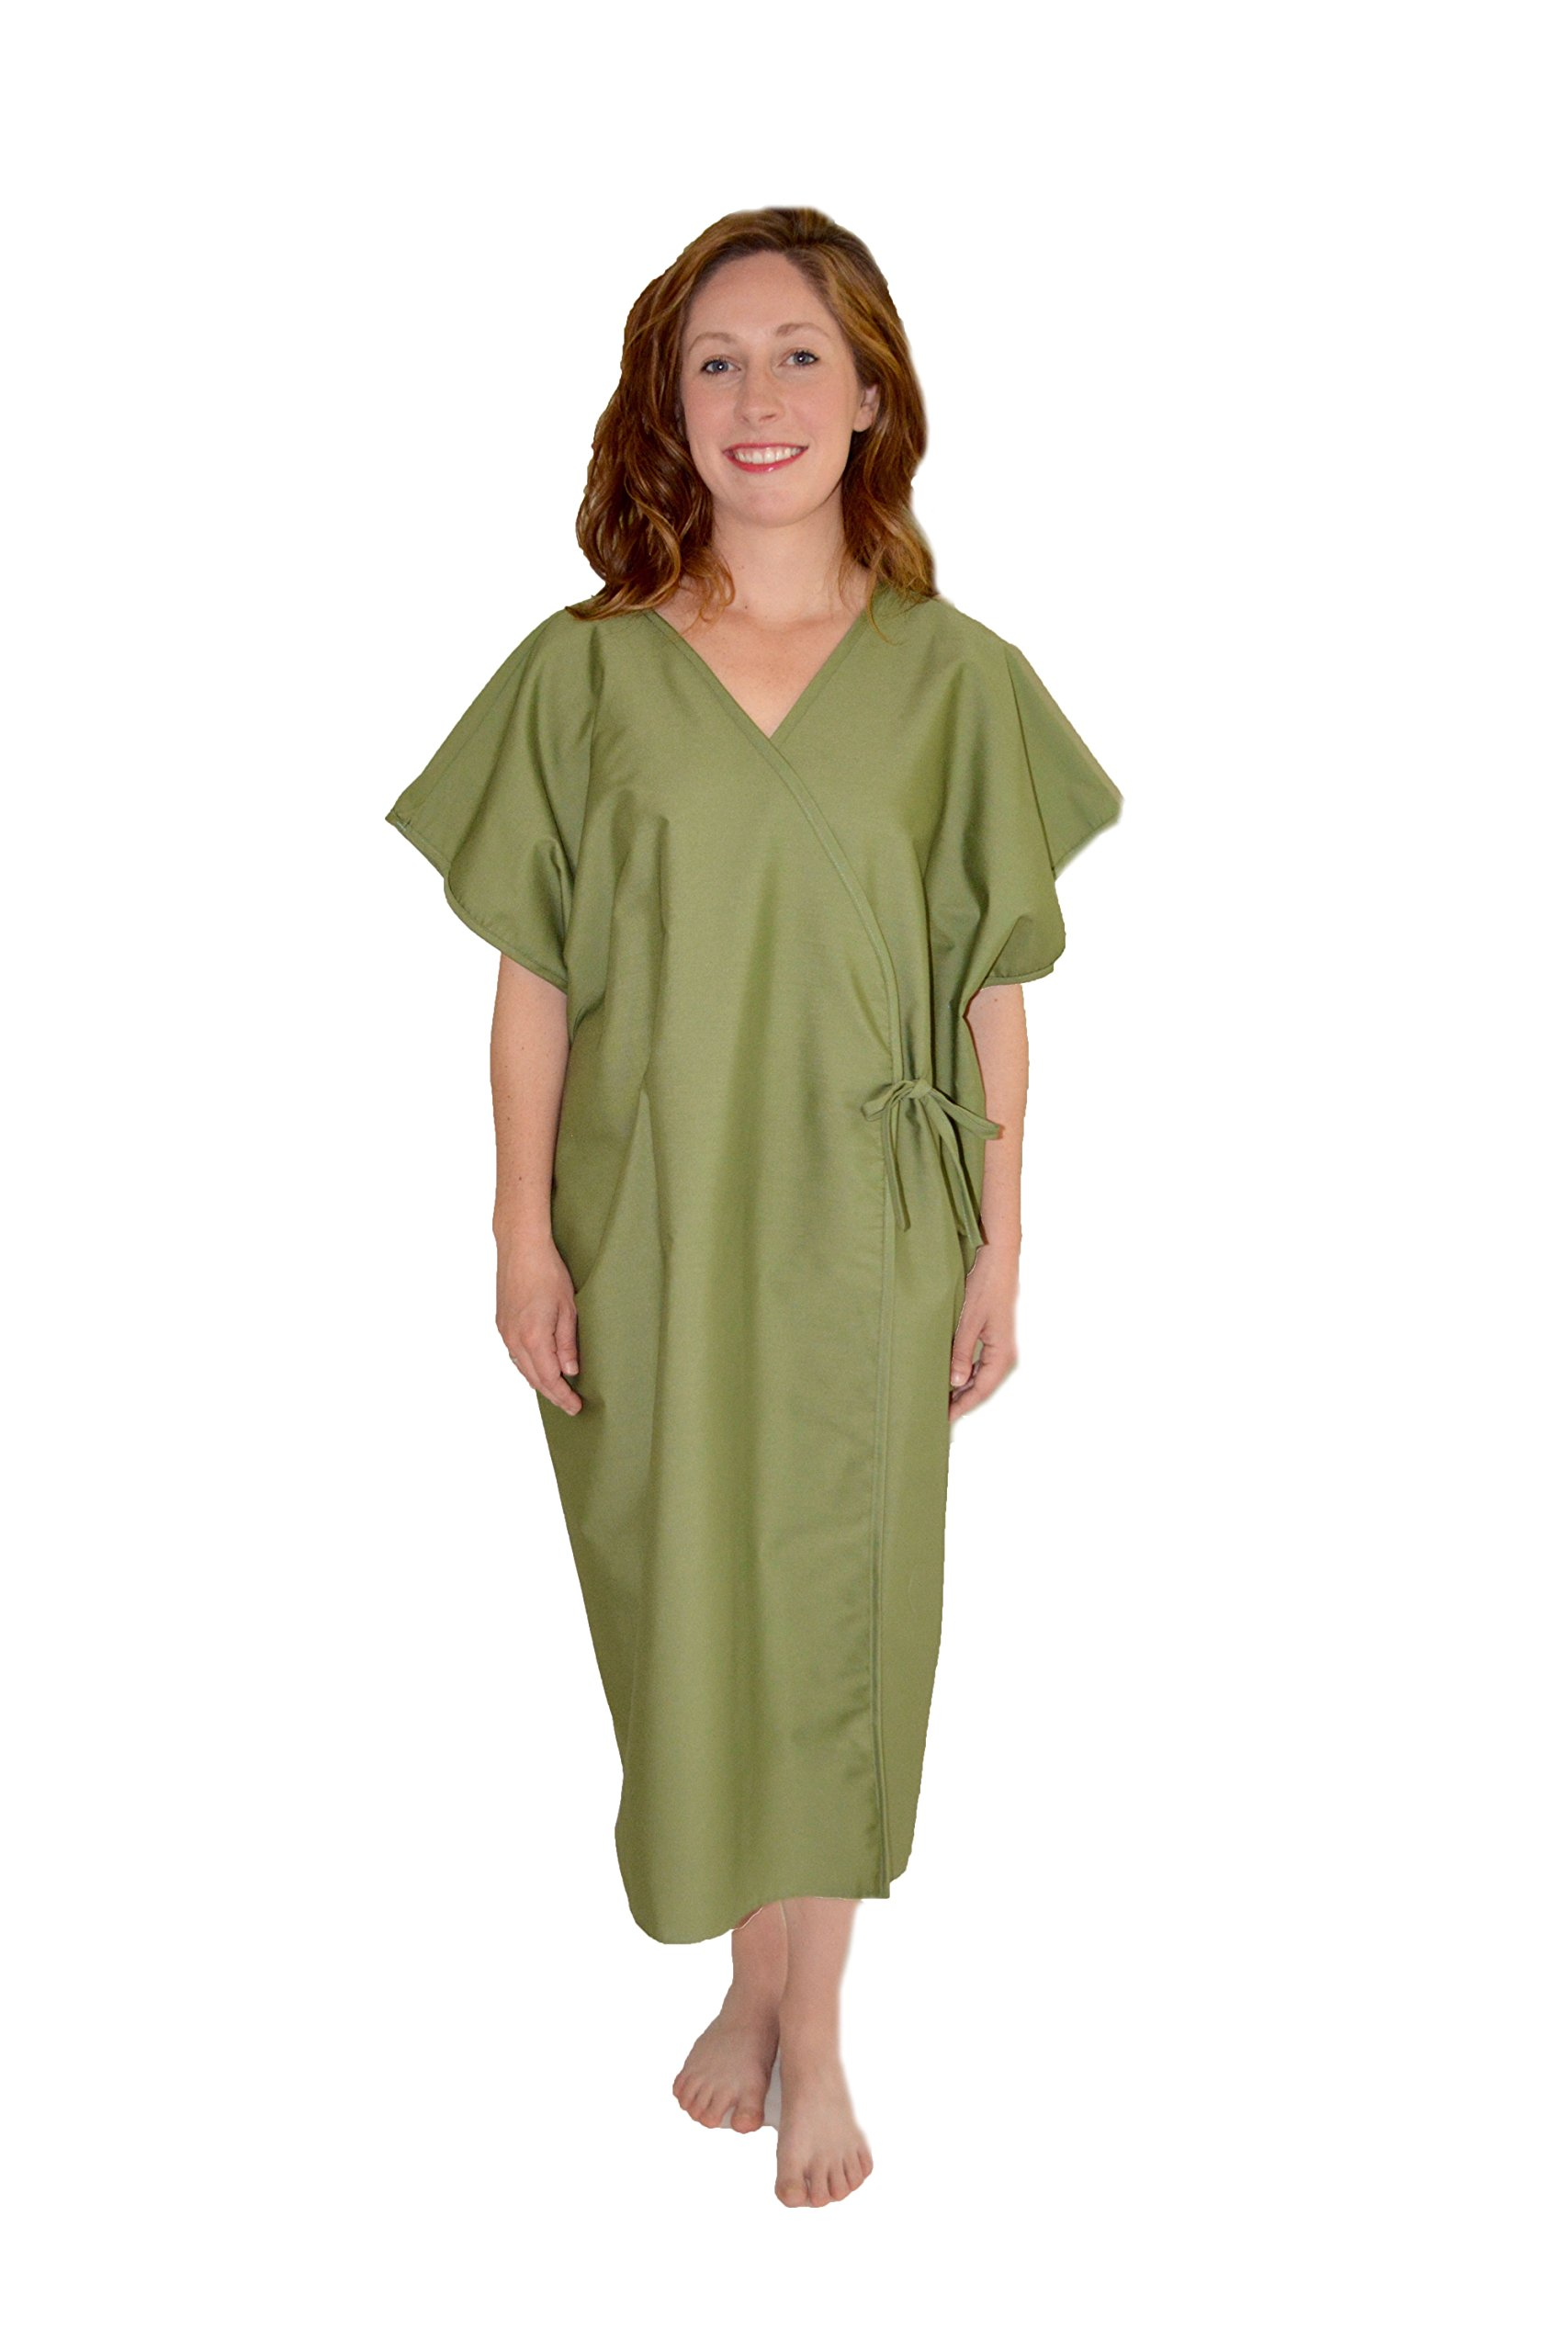 Health Gear- Open Front Kimono Mammography Exam Imaging Gown - Sage Green, M-XL (6 piece pack)